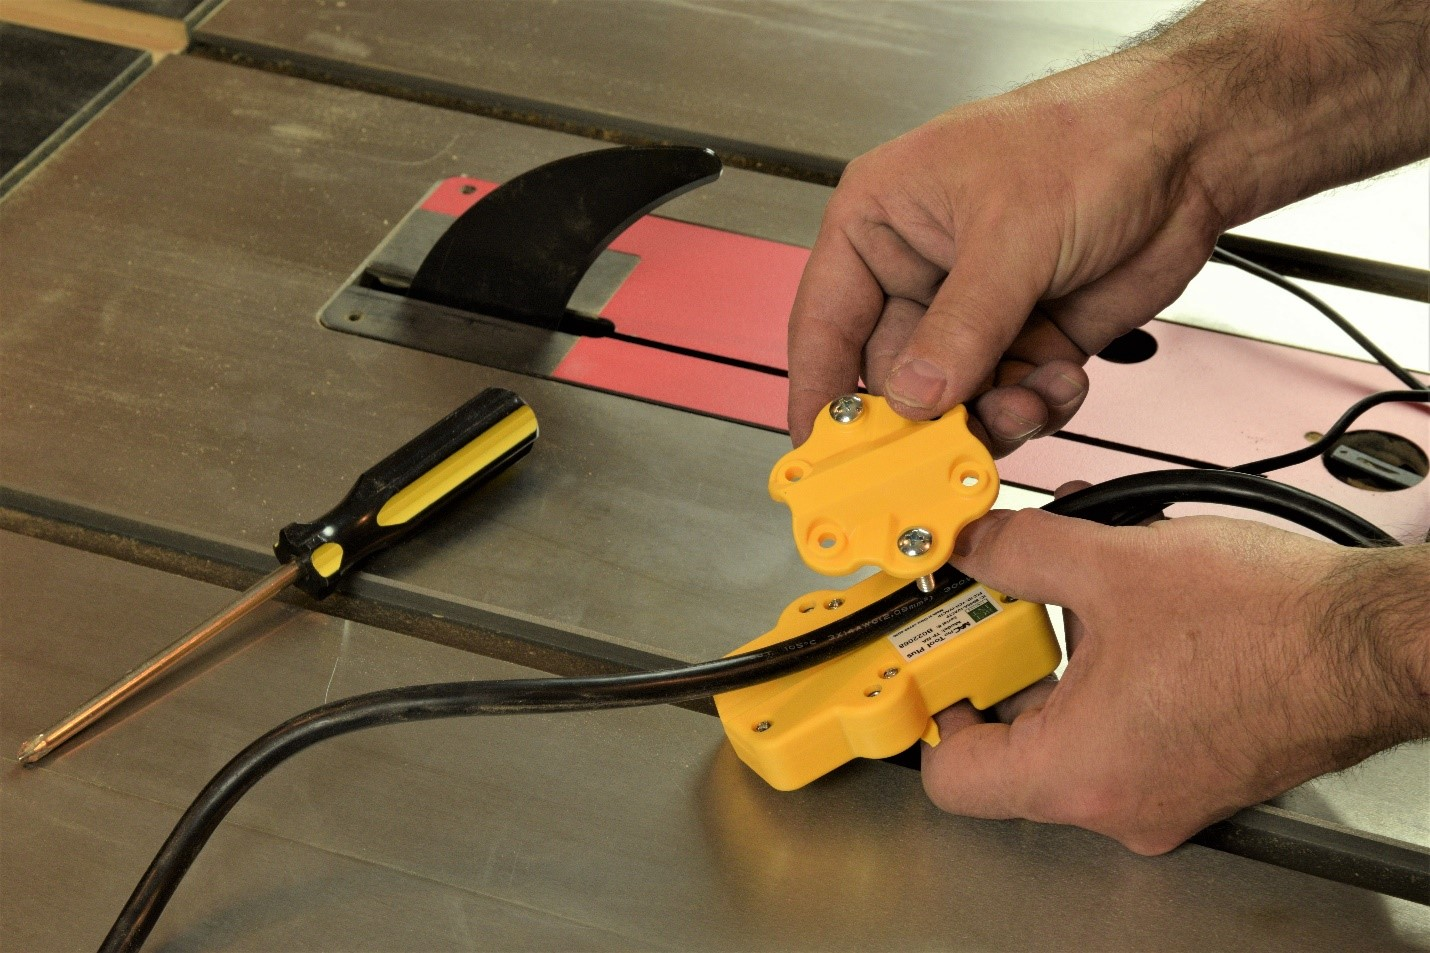 using a tool sensor to ensure collection is active